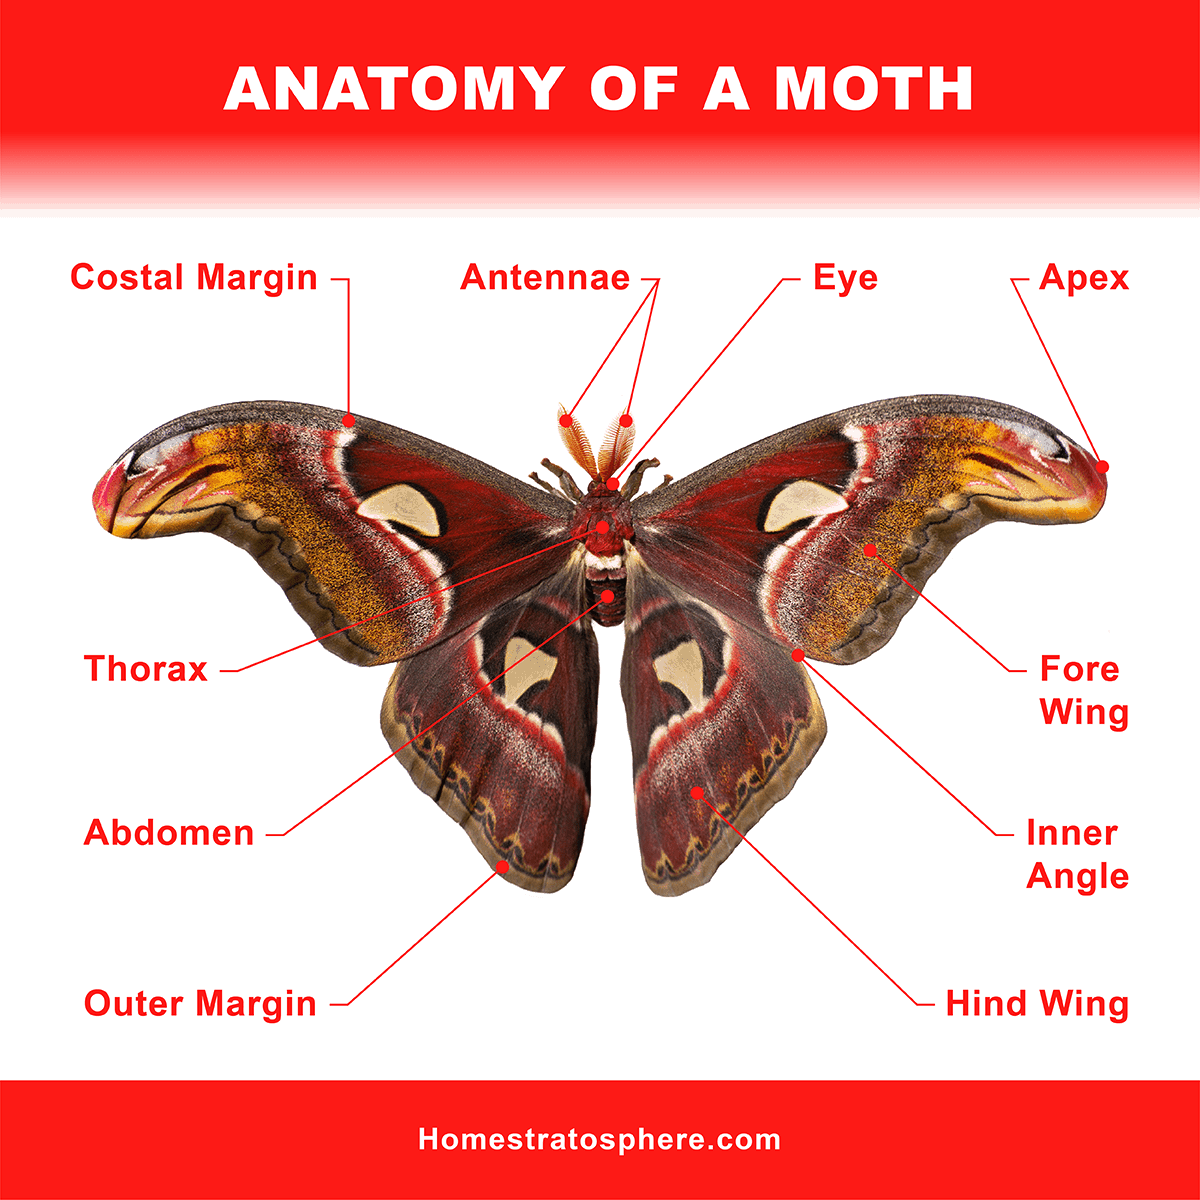 Anatomy of a Moth